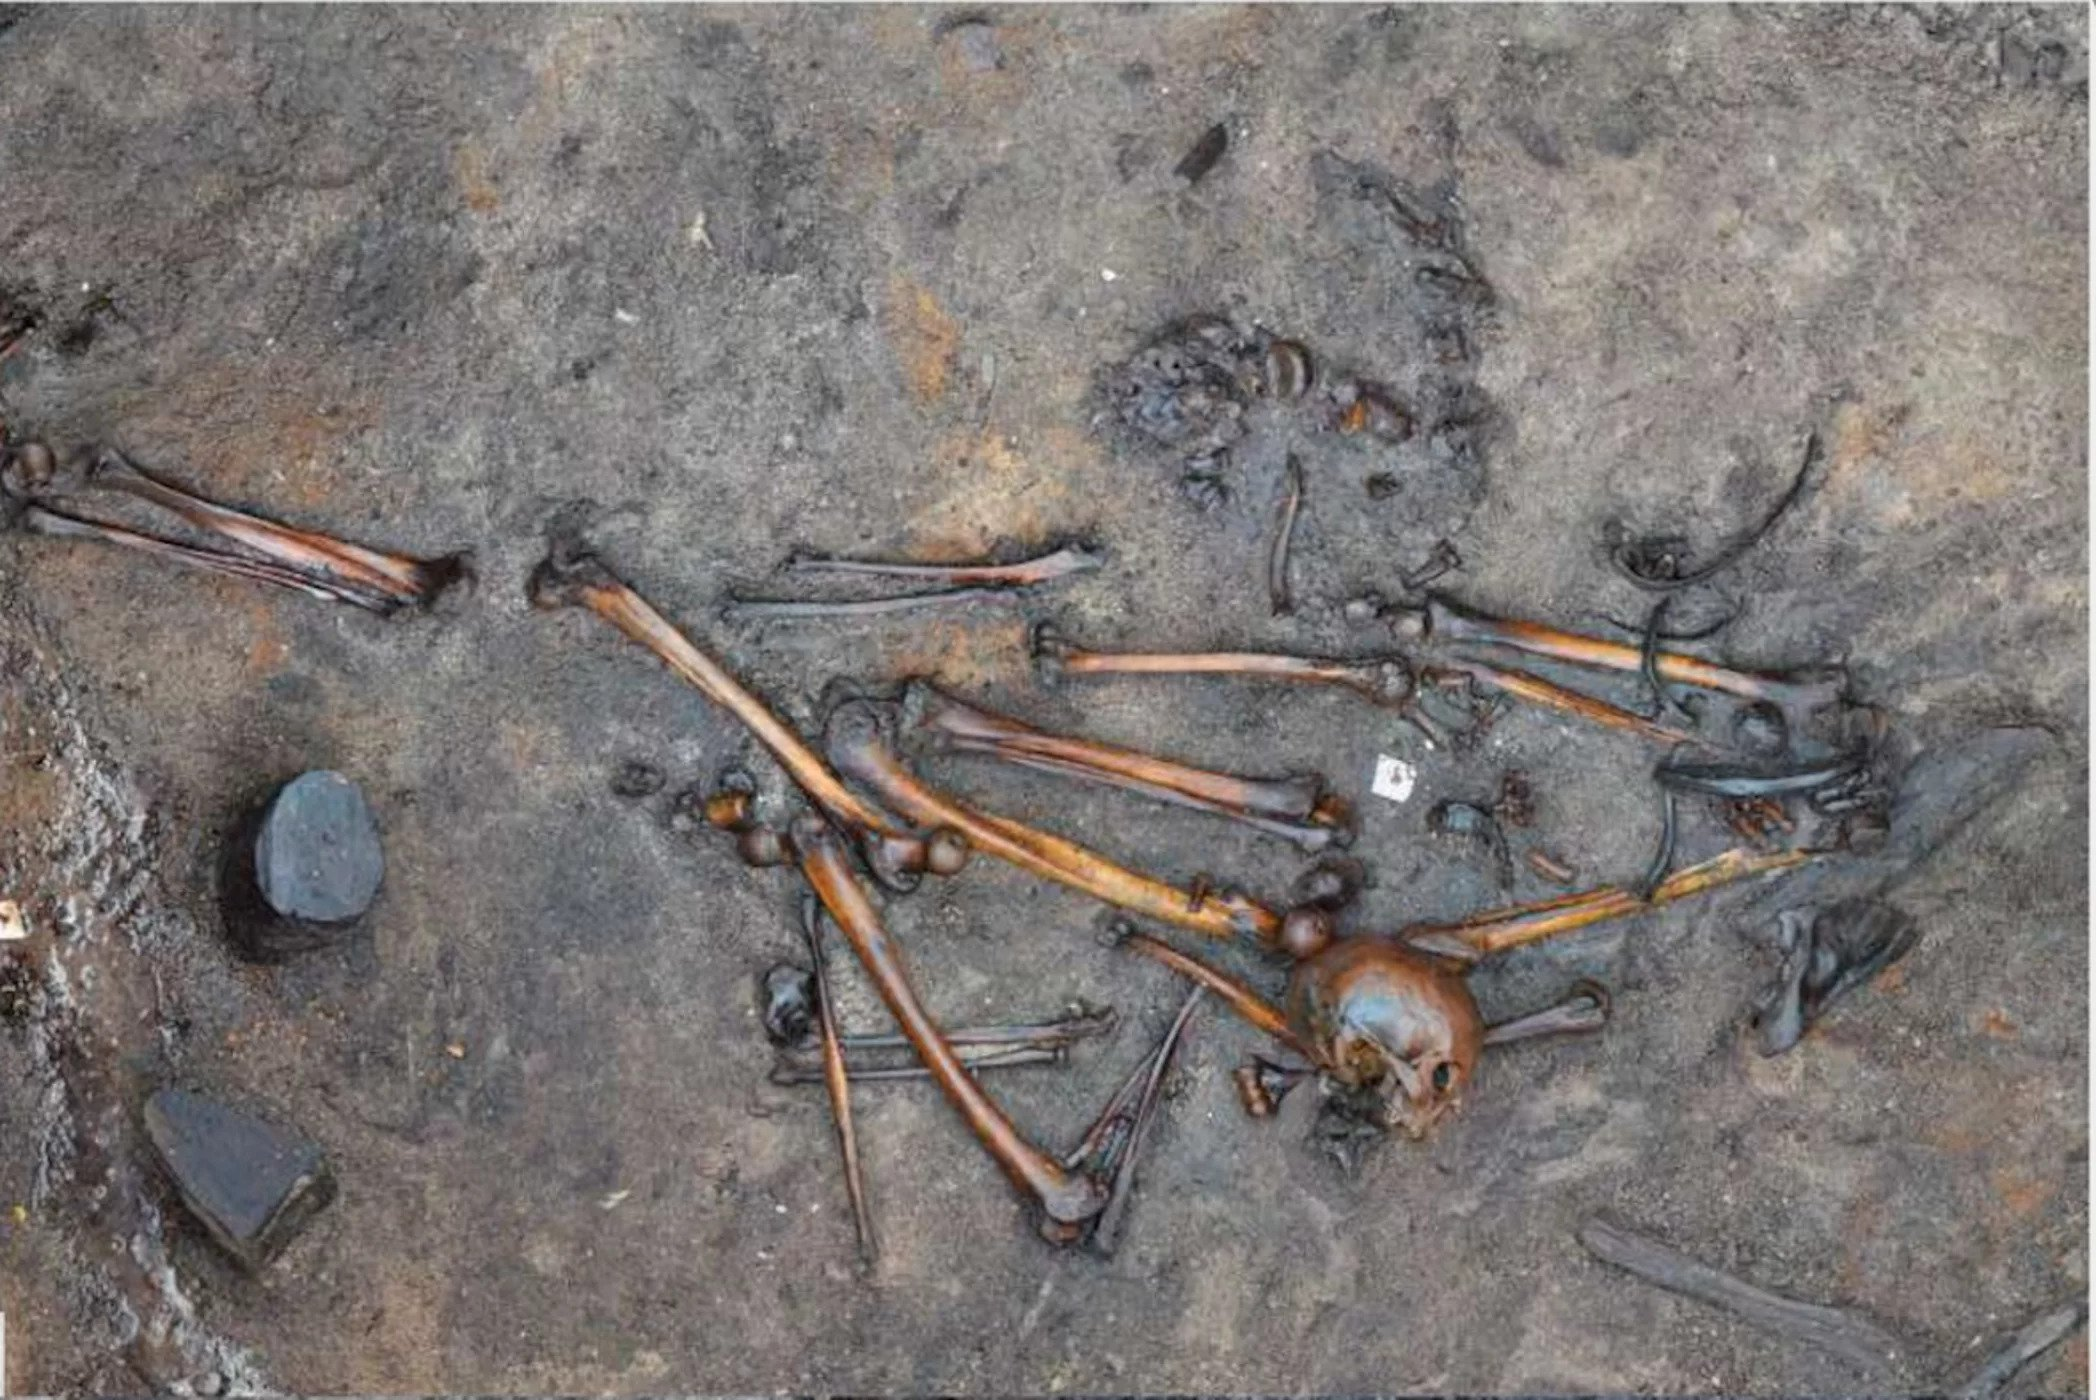 Denmark barbarian battle: Archaeologists Just Discovered the Mangled Remains